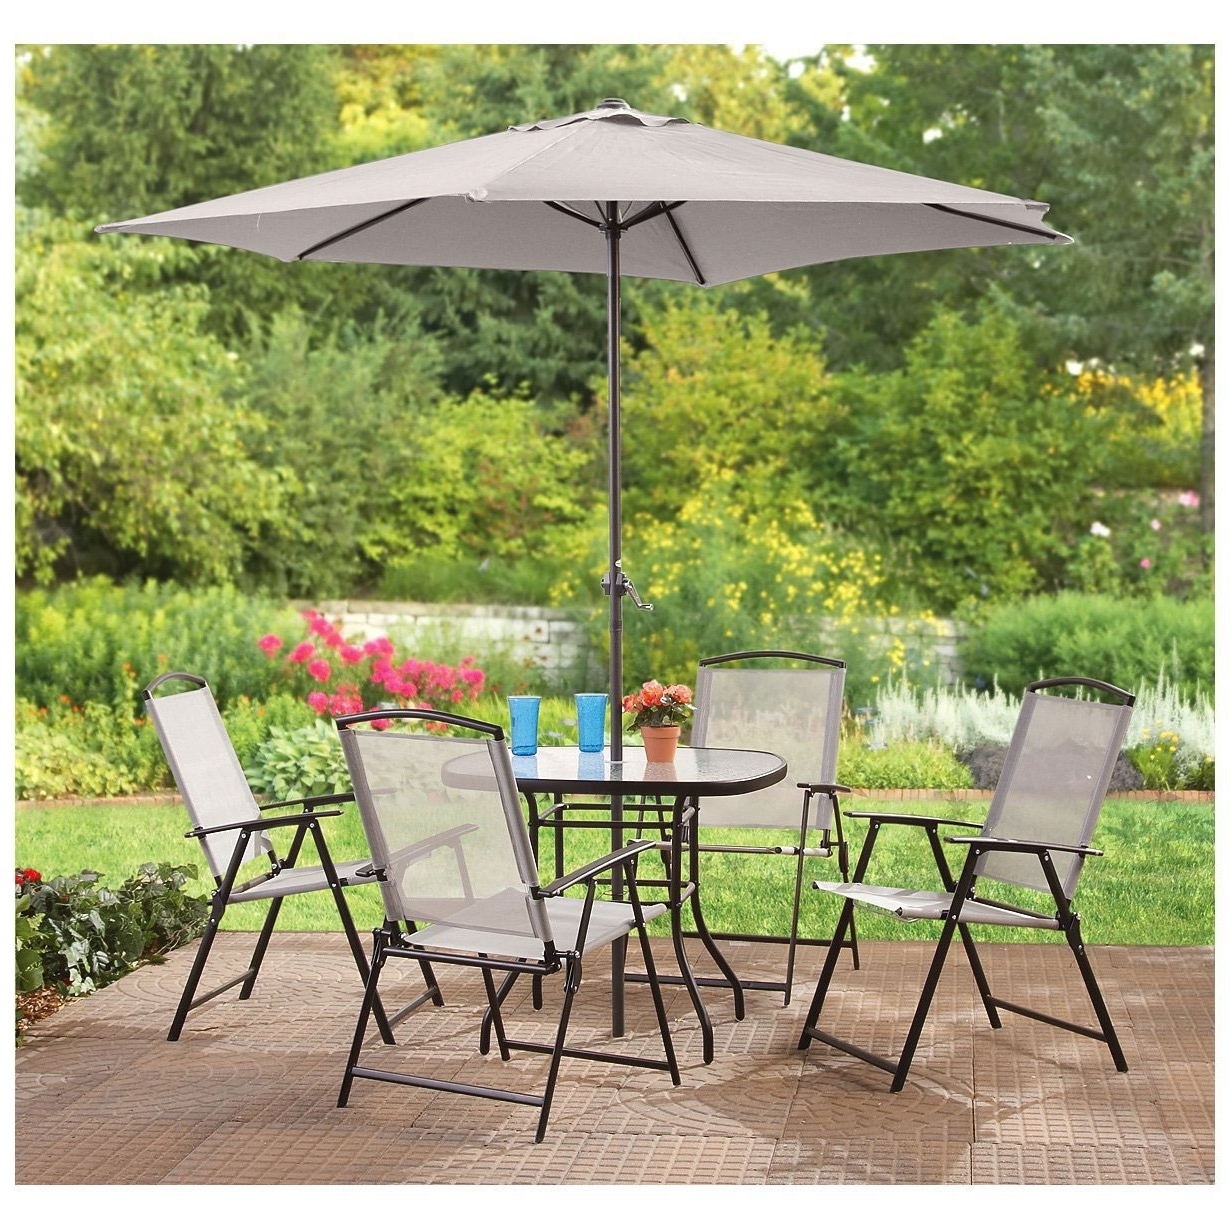 Preferred Outdoor Patio Table With Umbrella Hole 7 Piece Dining Set Furniture Intended For Patio Table Sets With Umbrellas (View 17 of 20)